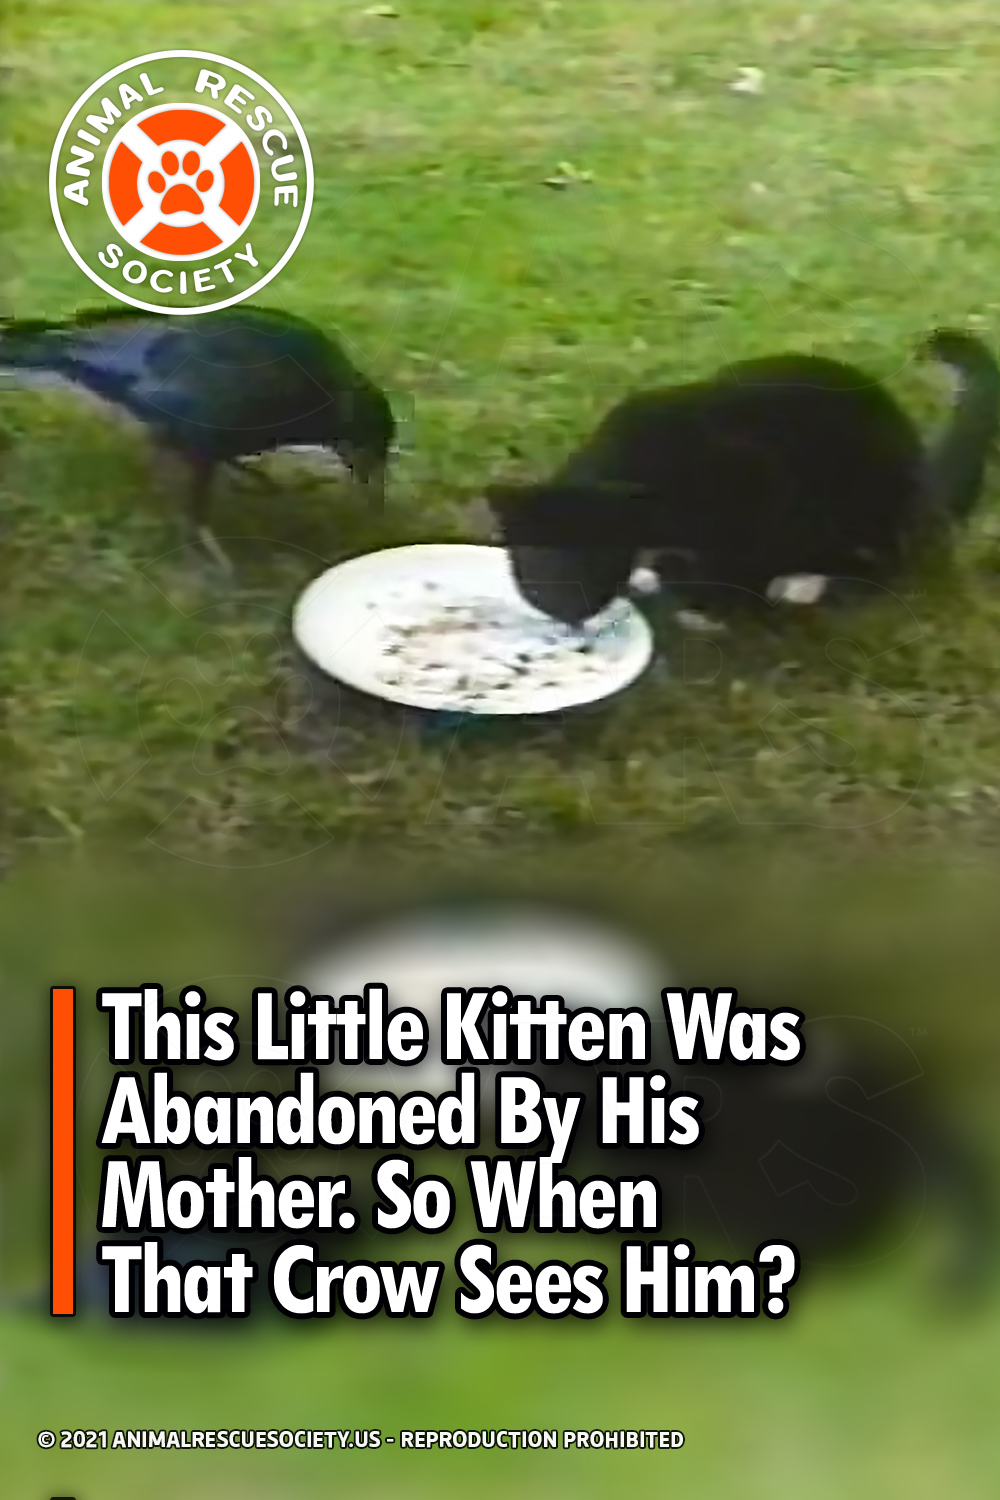 This Little Kitten Was Abandoned By His Mother. So When That Crow Sees Him?